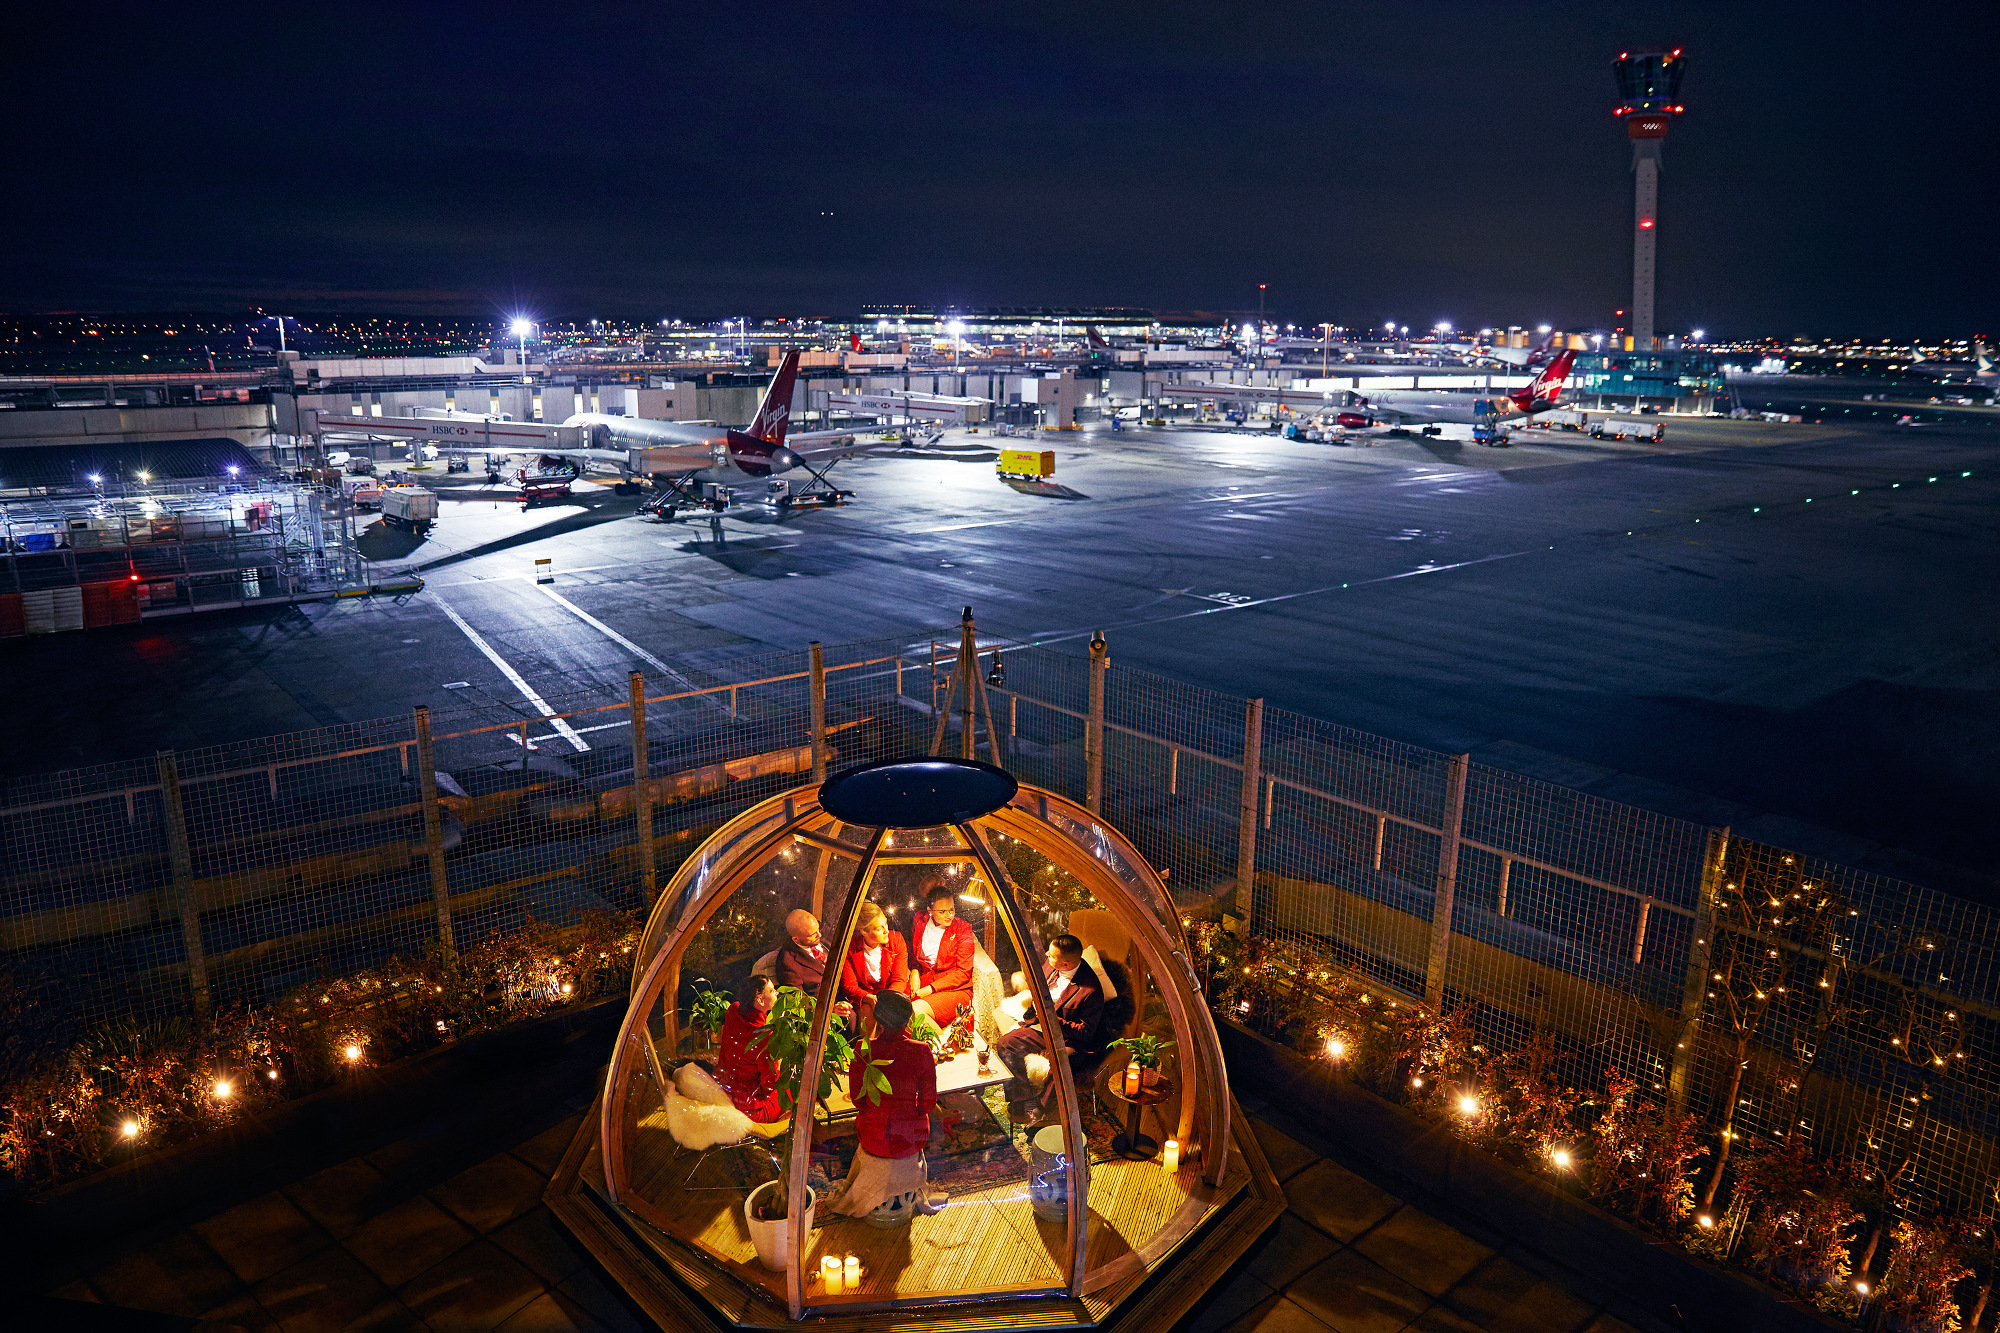 The Coppa Club igloo is on the roof of the terminal three Clubhouse in Heathrow.